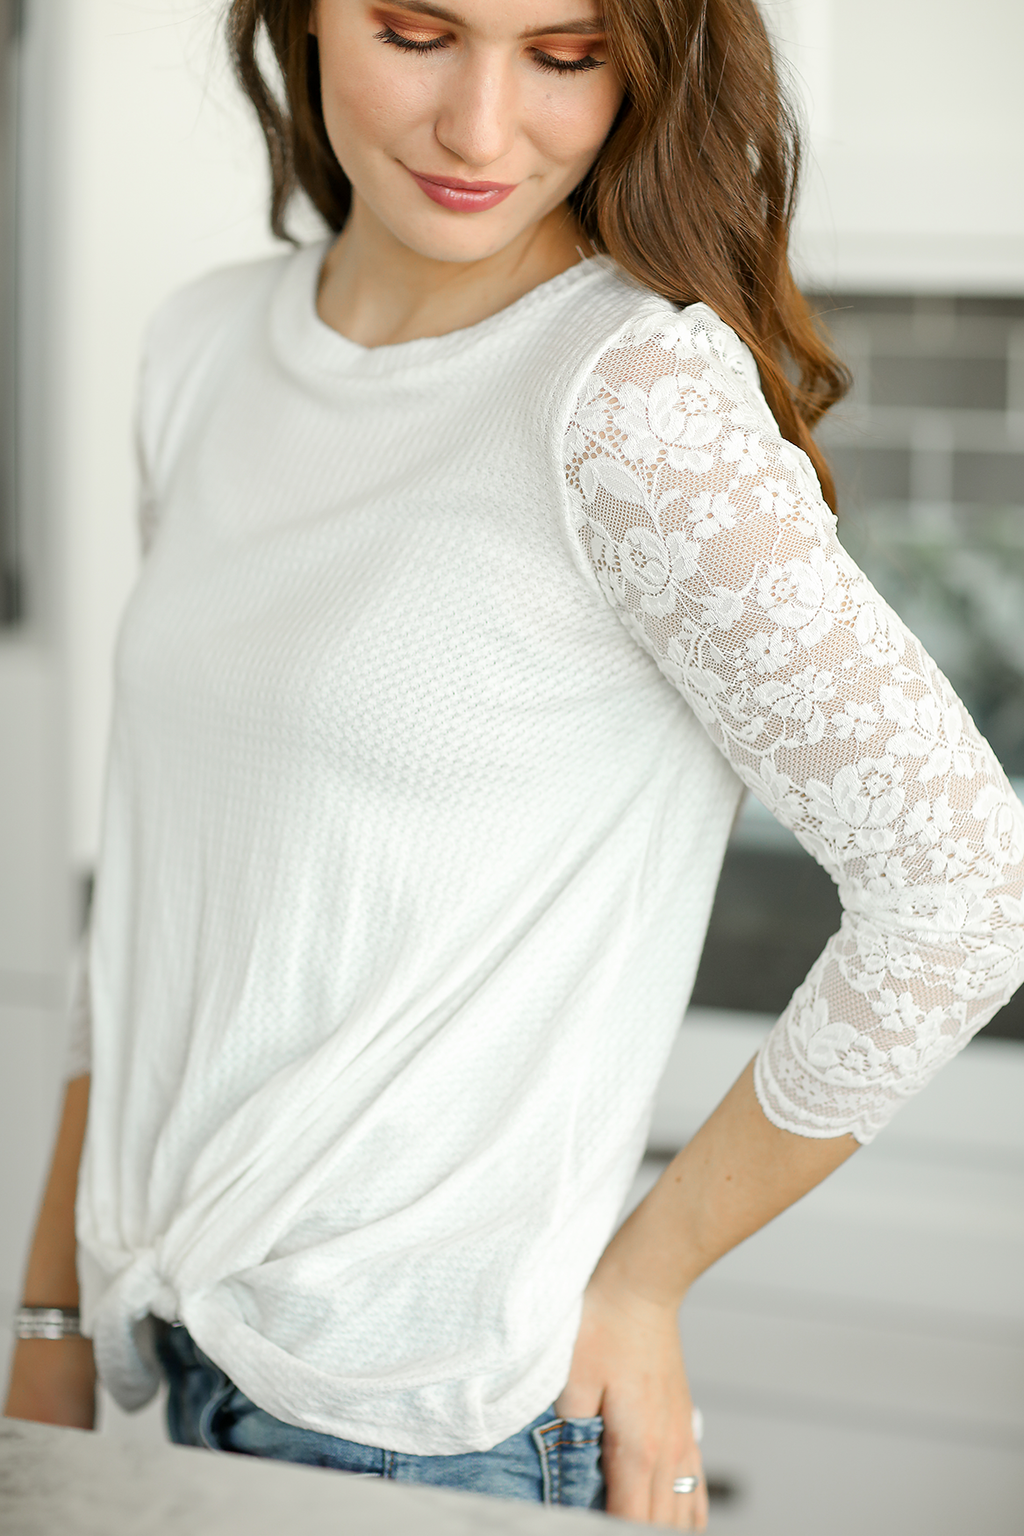 What You Need White Twist Top With Lace Sleeves